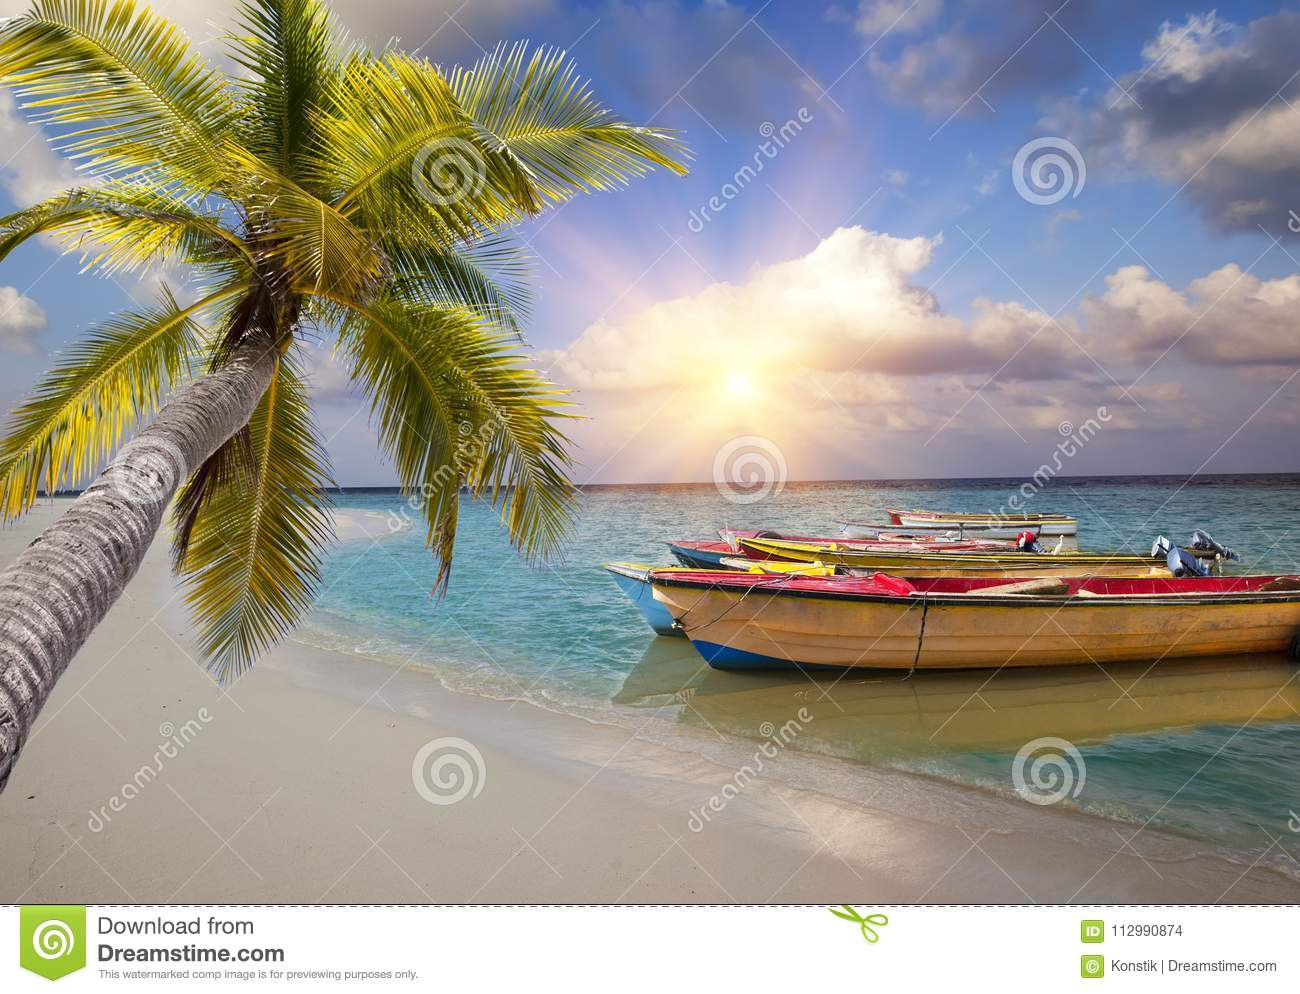 Maldives. Bright wooden boats in the sea and the palm tree has bent over water